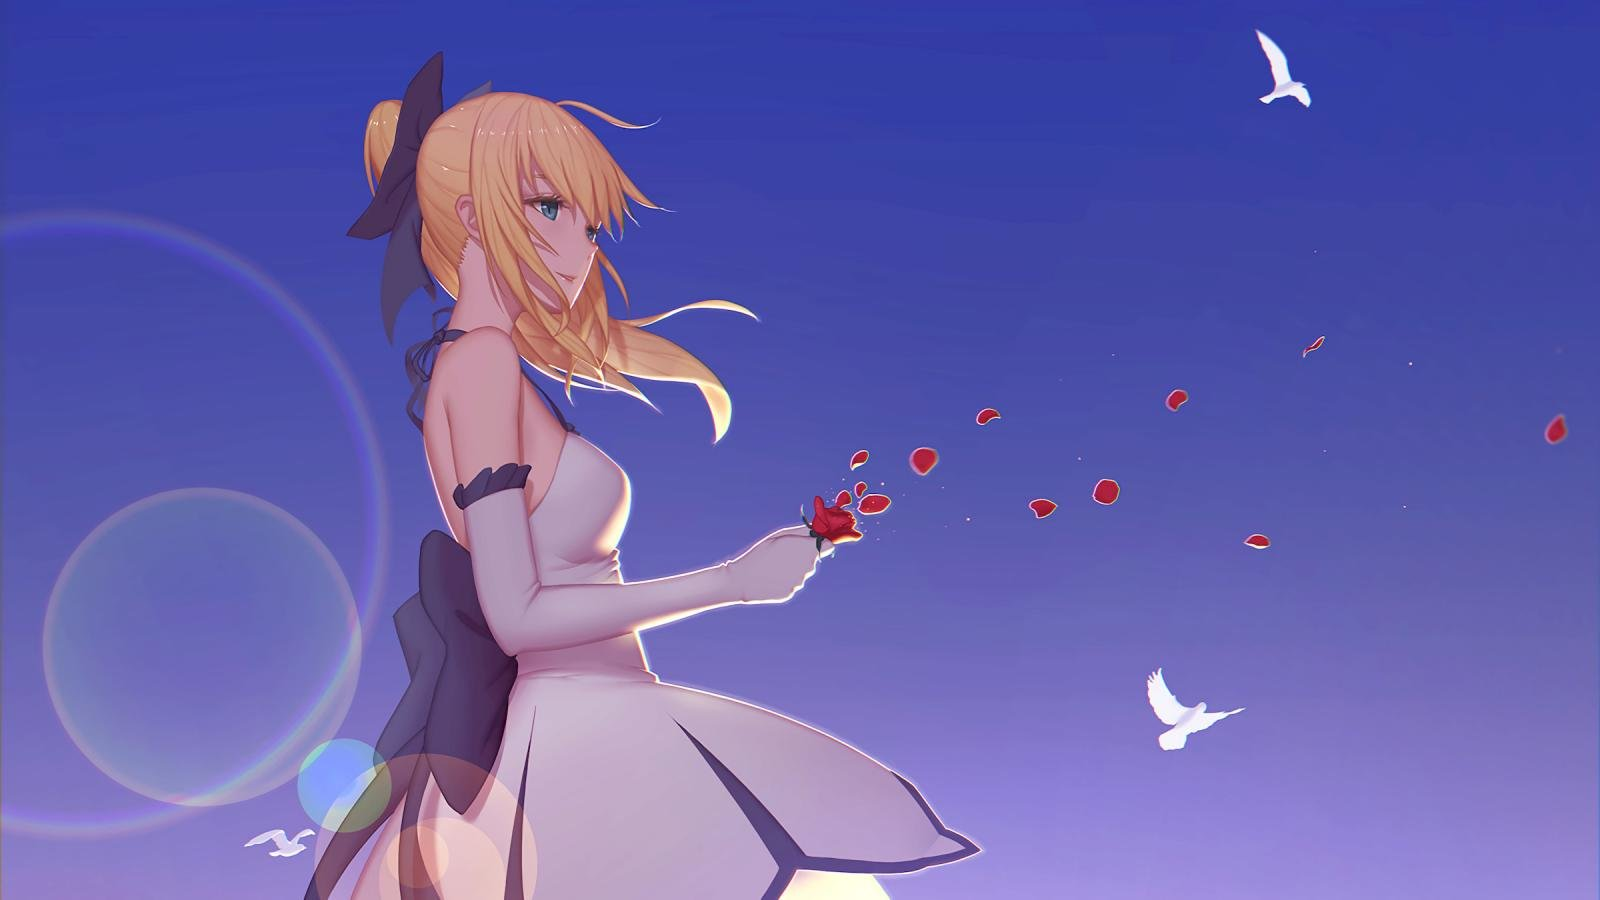 Download hd 1600x900 Saber (Fate Series) desktop background ID:468902 for free